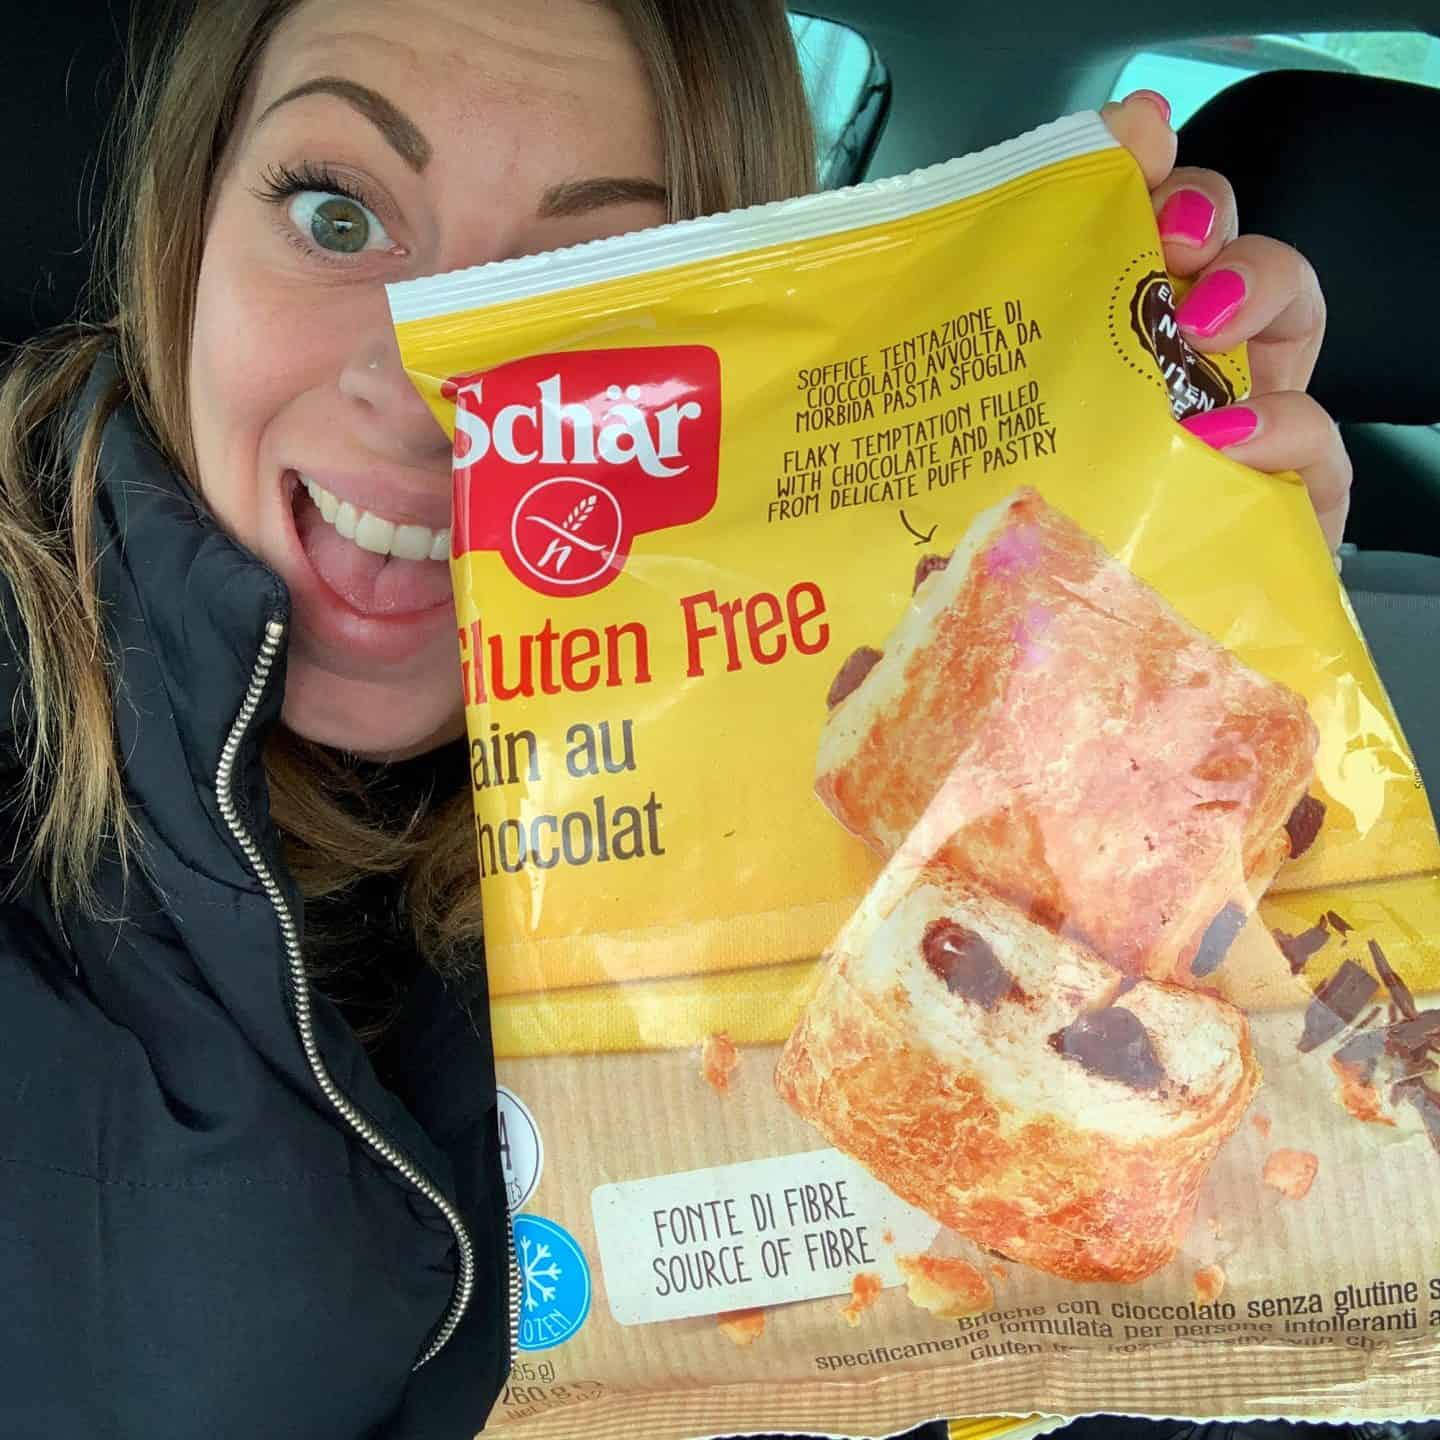 gluten free foods may 2019 1